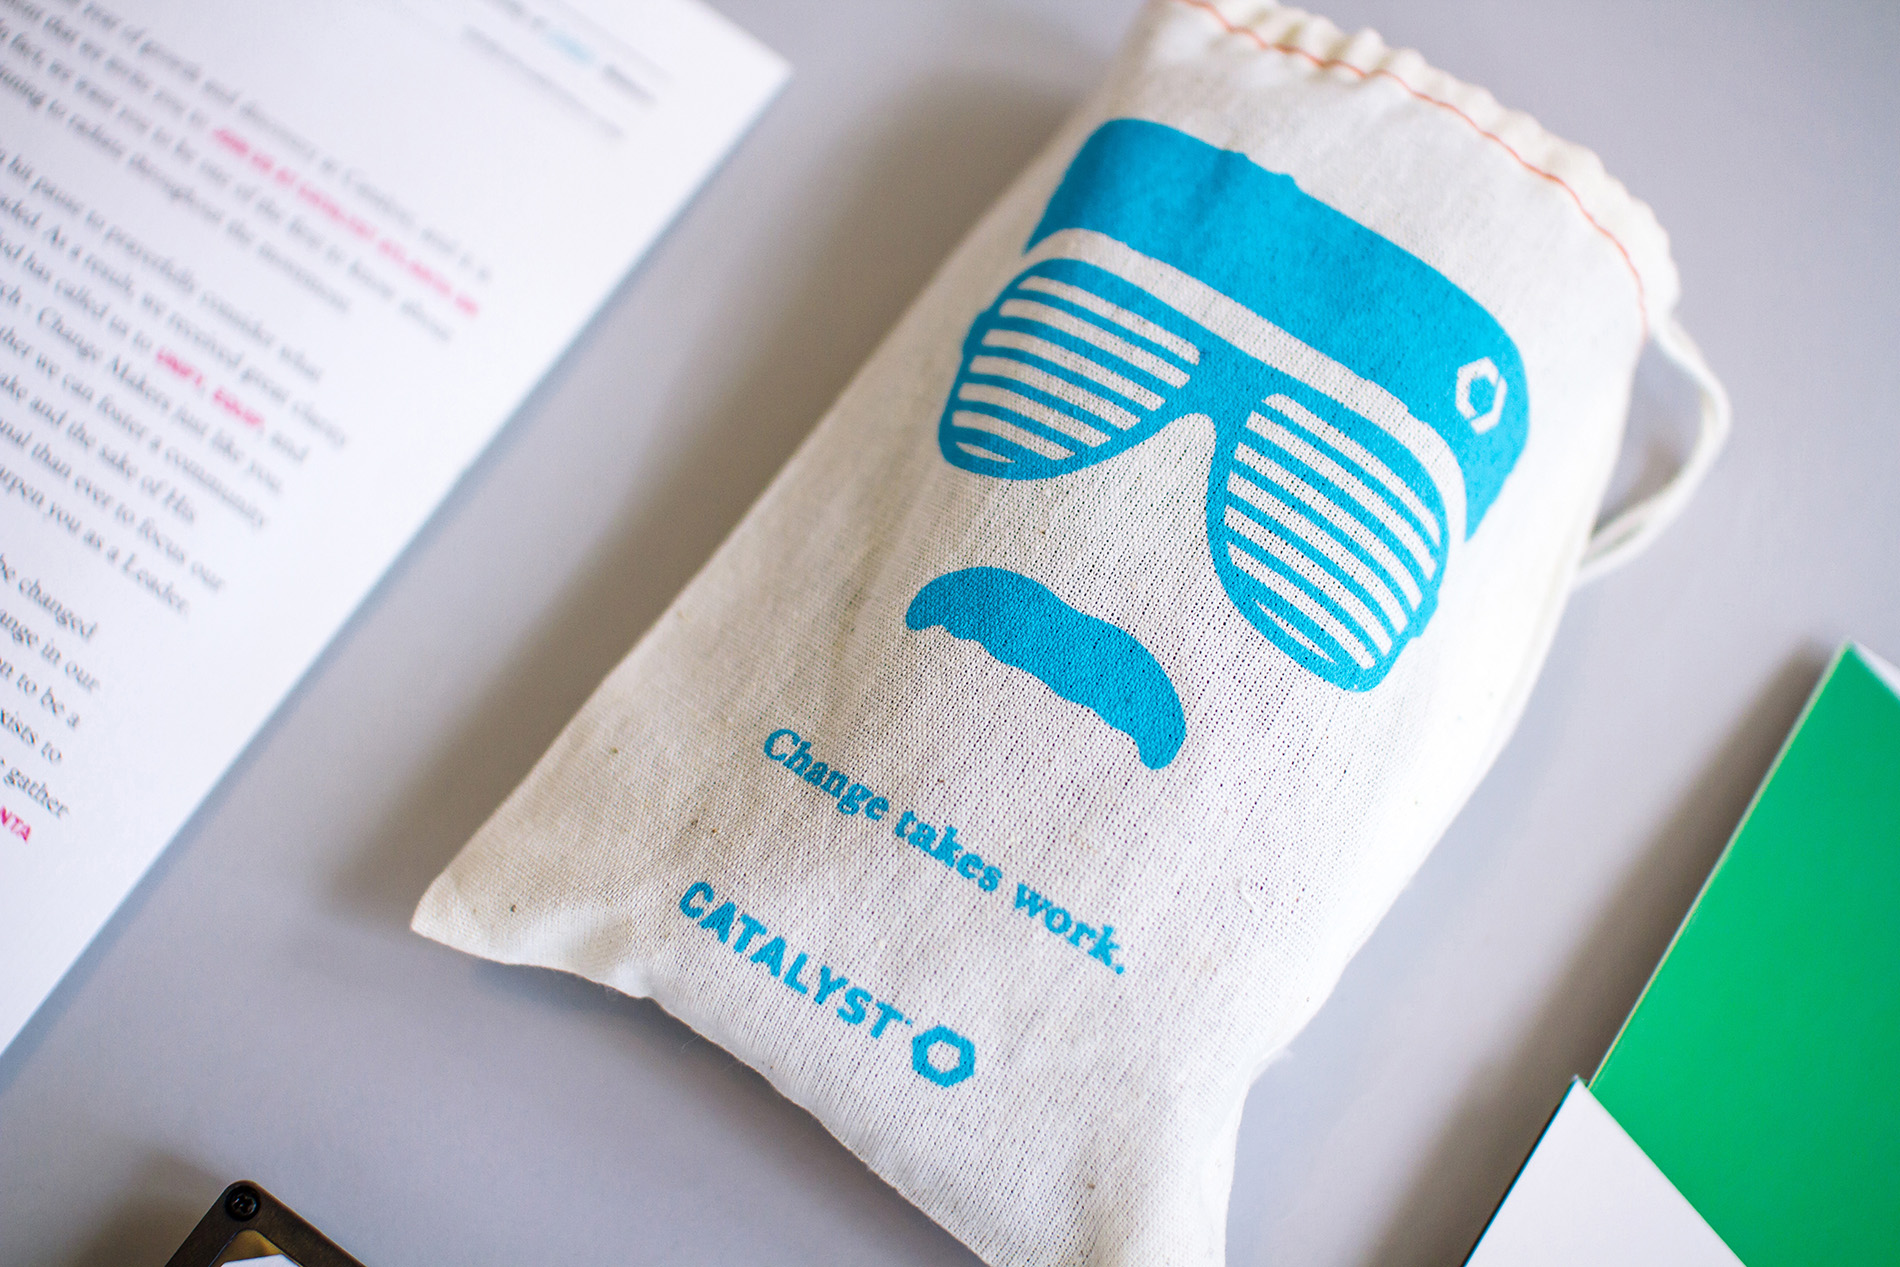 Stunner shades, mustache, and headband illustration that reads Change takes work on a custom screen printed linen cotton drawstring bag for Catalyst Conference 2014.